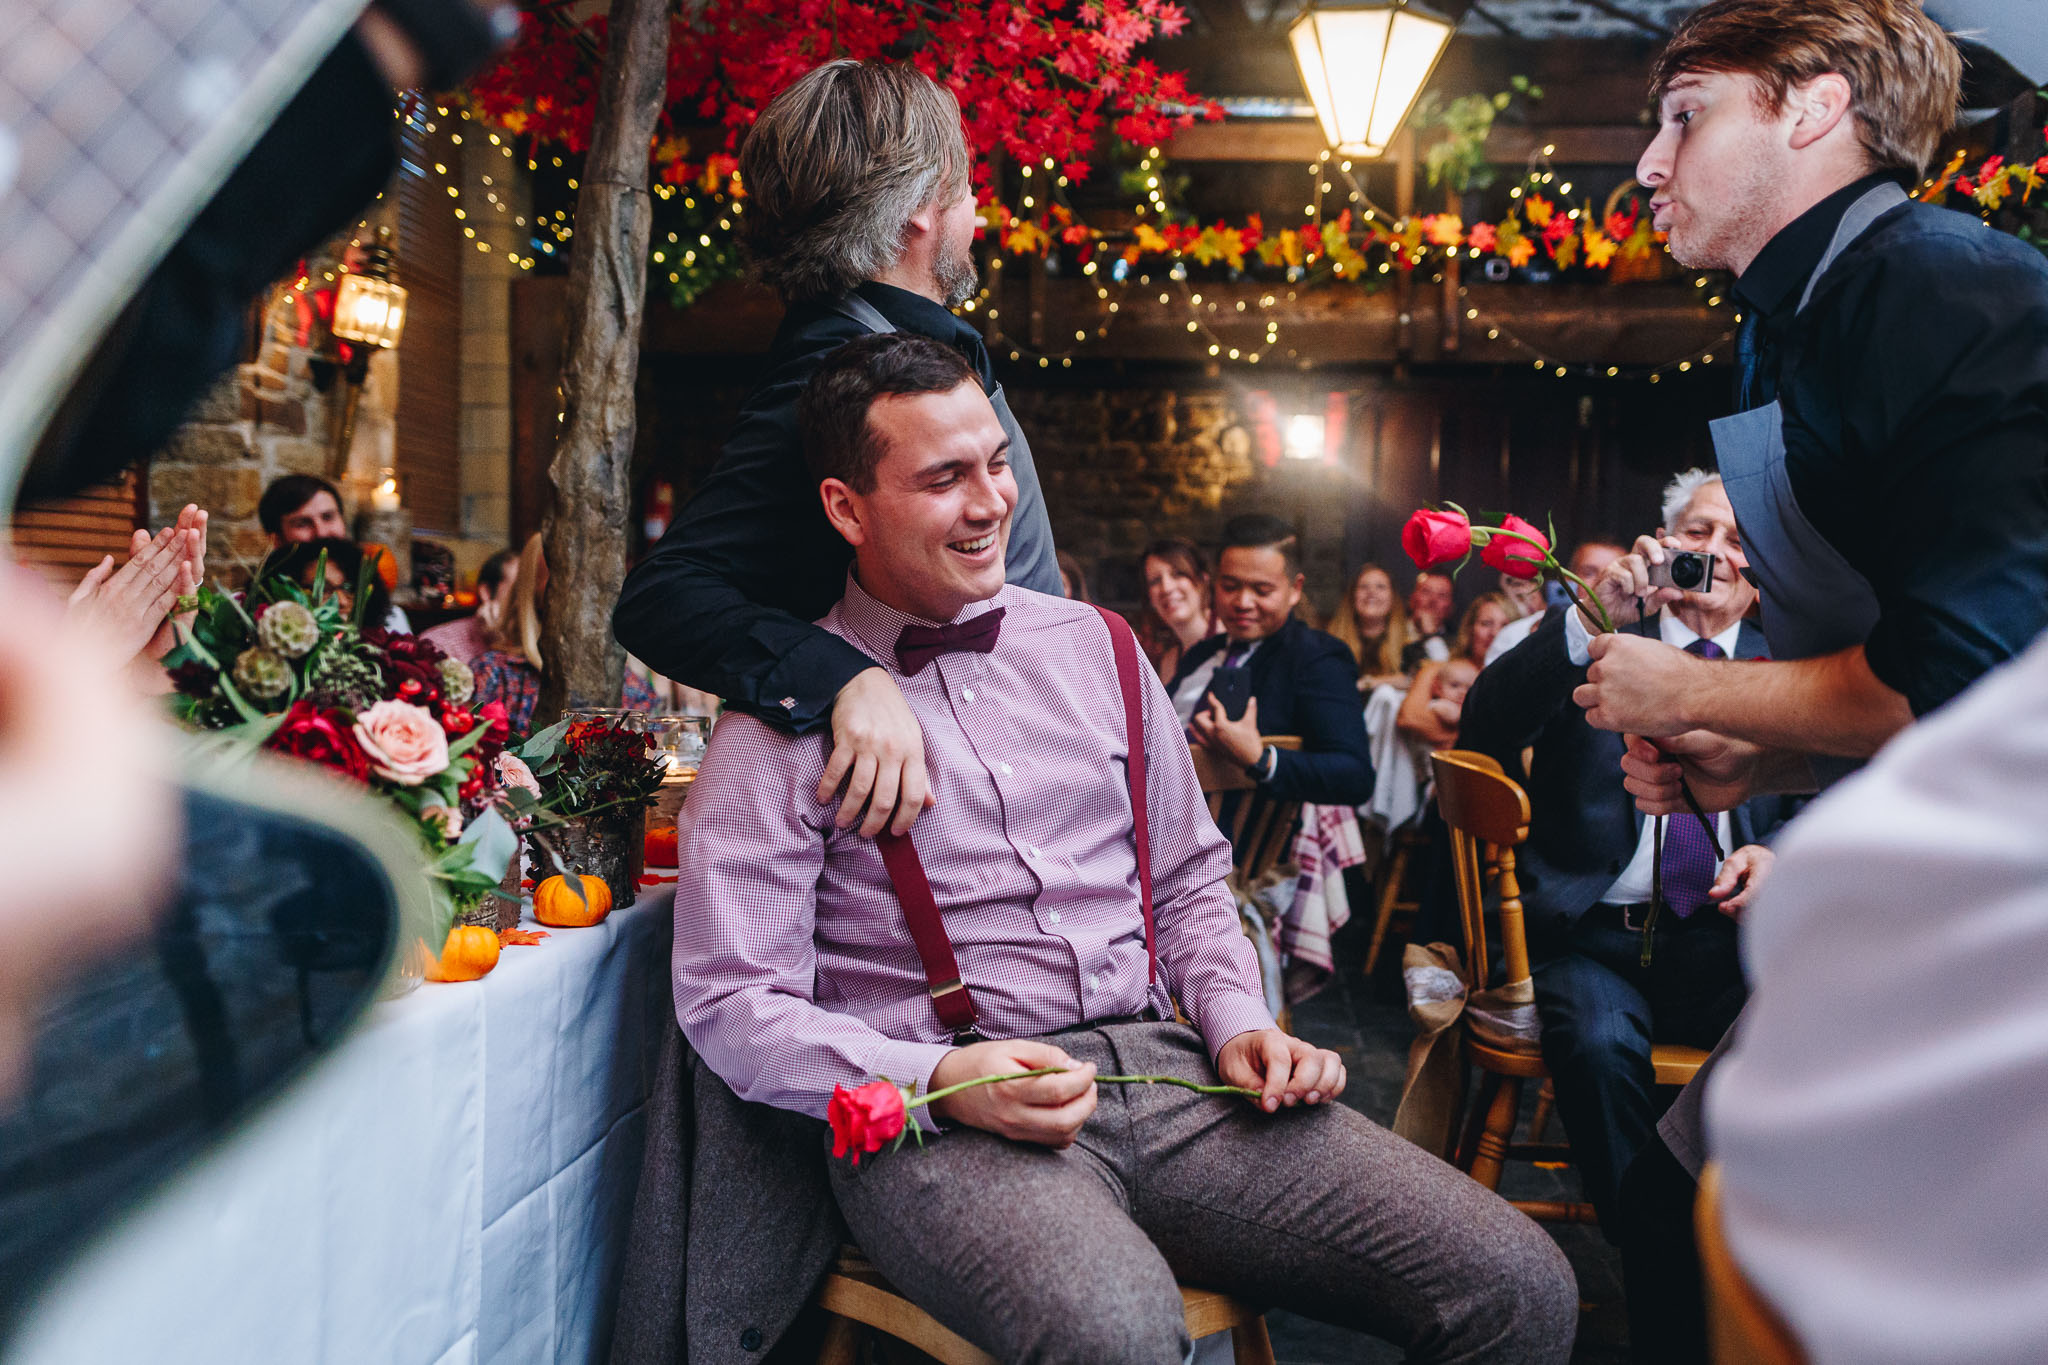 Cubley Hall Wedding Photographer Penistone Autumnal Wedding by Andy Matheson Photography_101.jpg